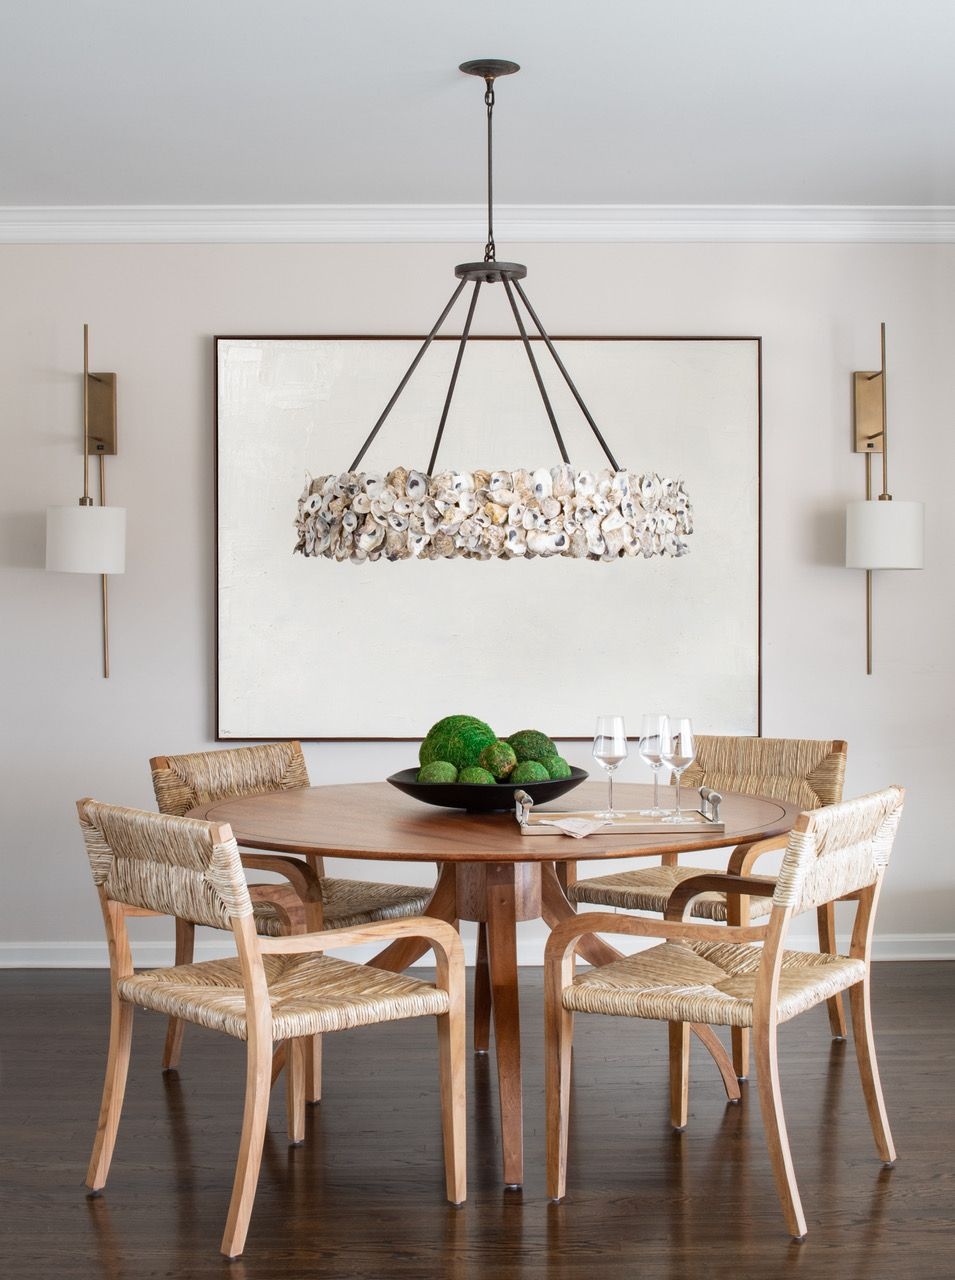 Liz Mearns home tour - dining table with chairs